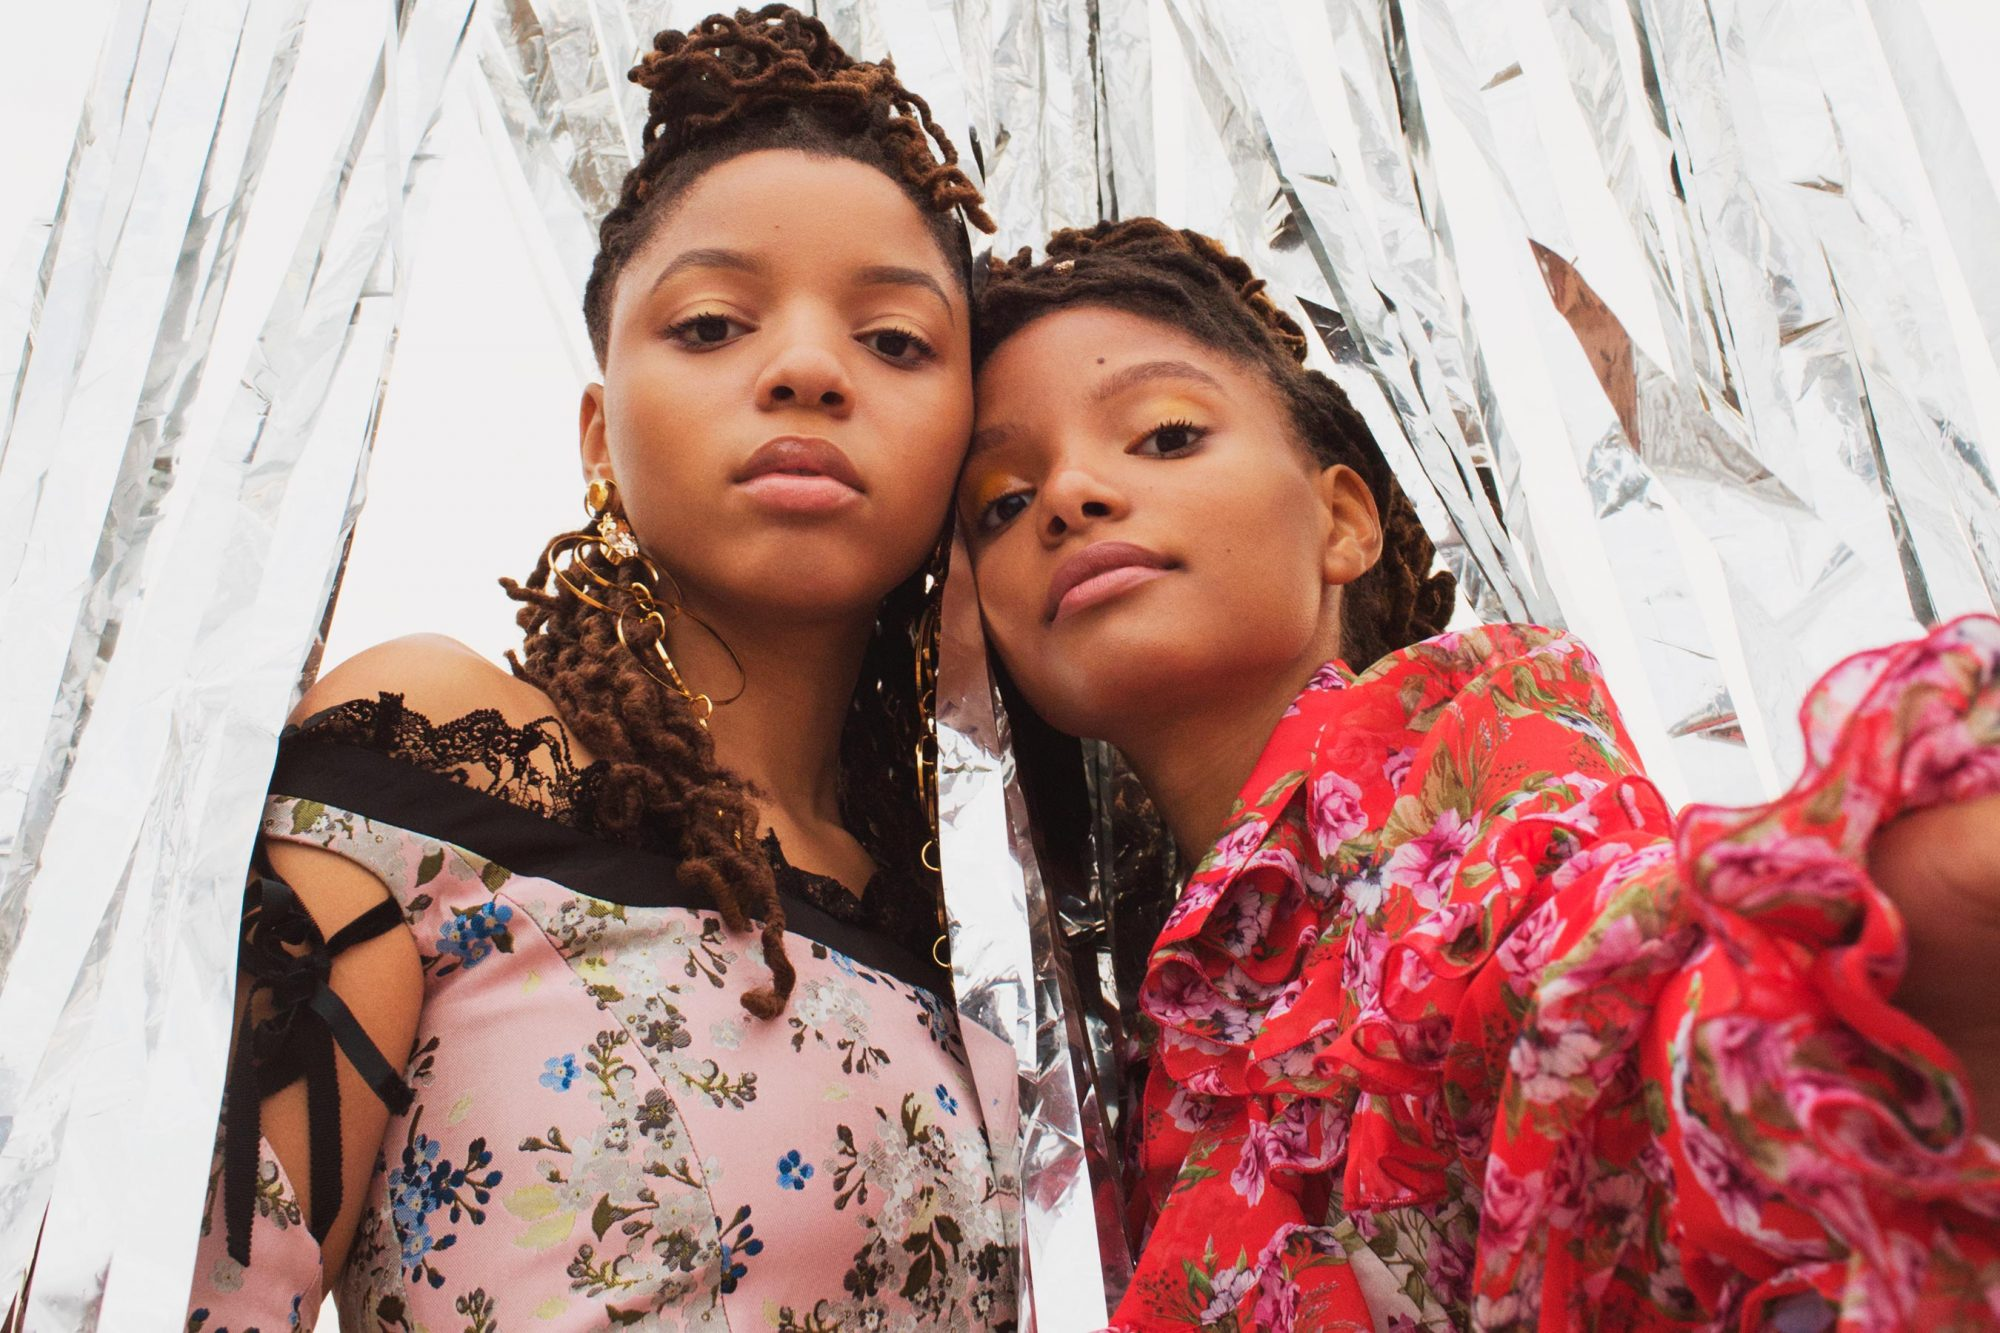 beyonce proteges chloe x halle